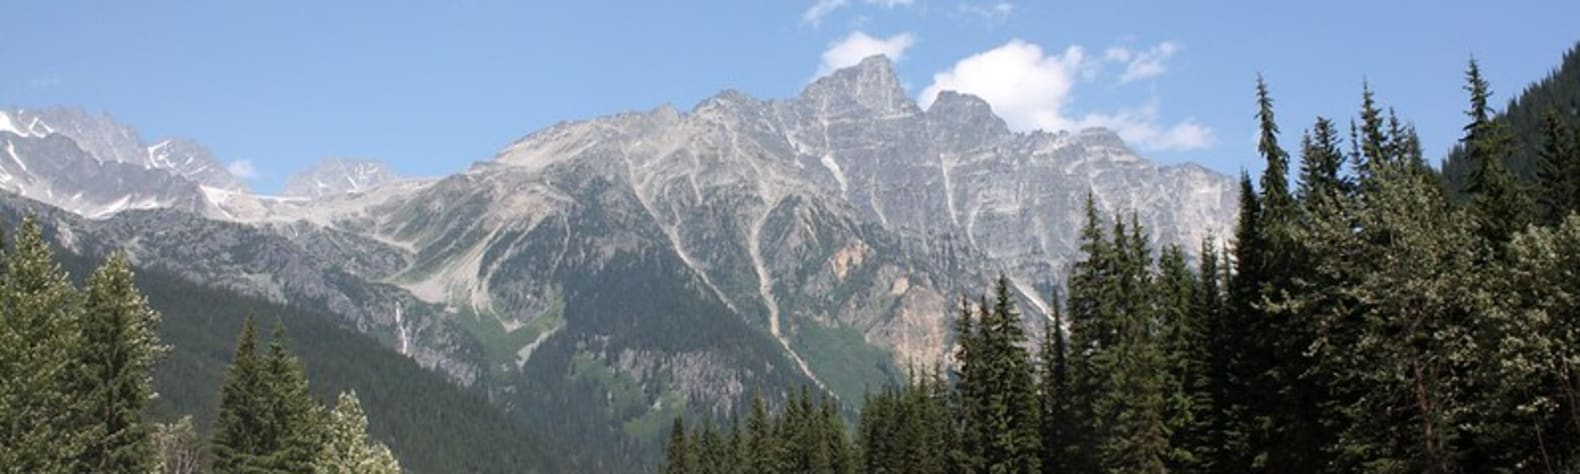 Rogers Pass National Historic Site